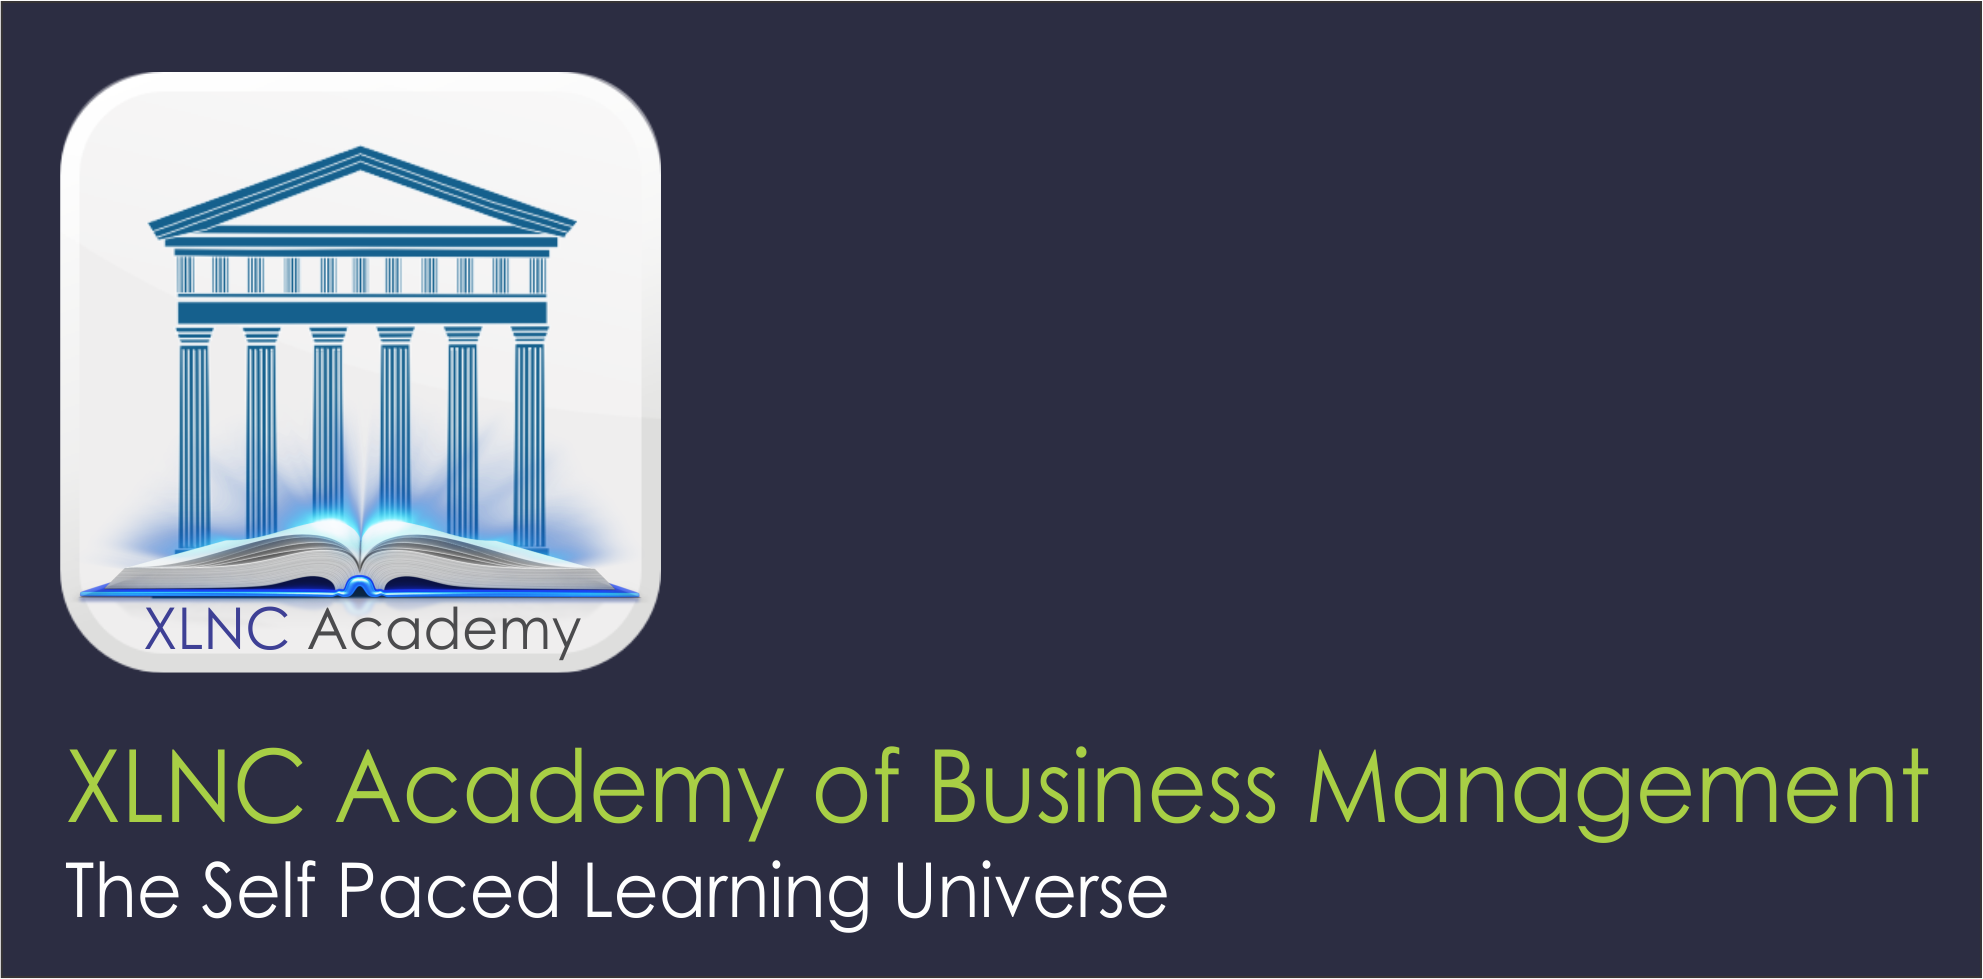 Xlnc academy of business management the council for six sigma xlnc academy of business management the council for six sigma certification 1betcityfo Choice Image